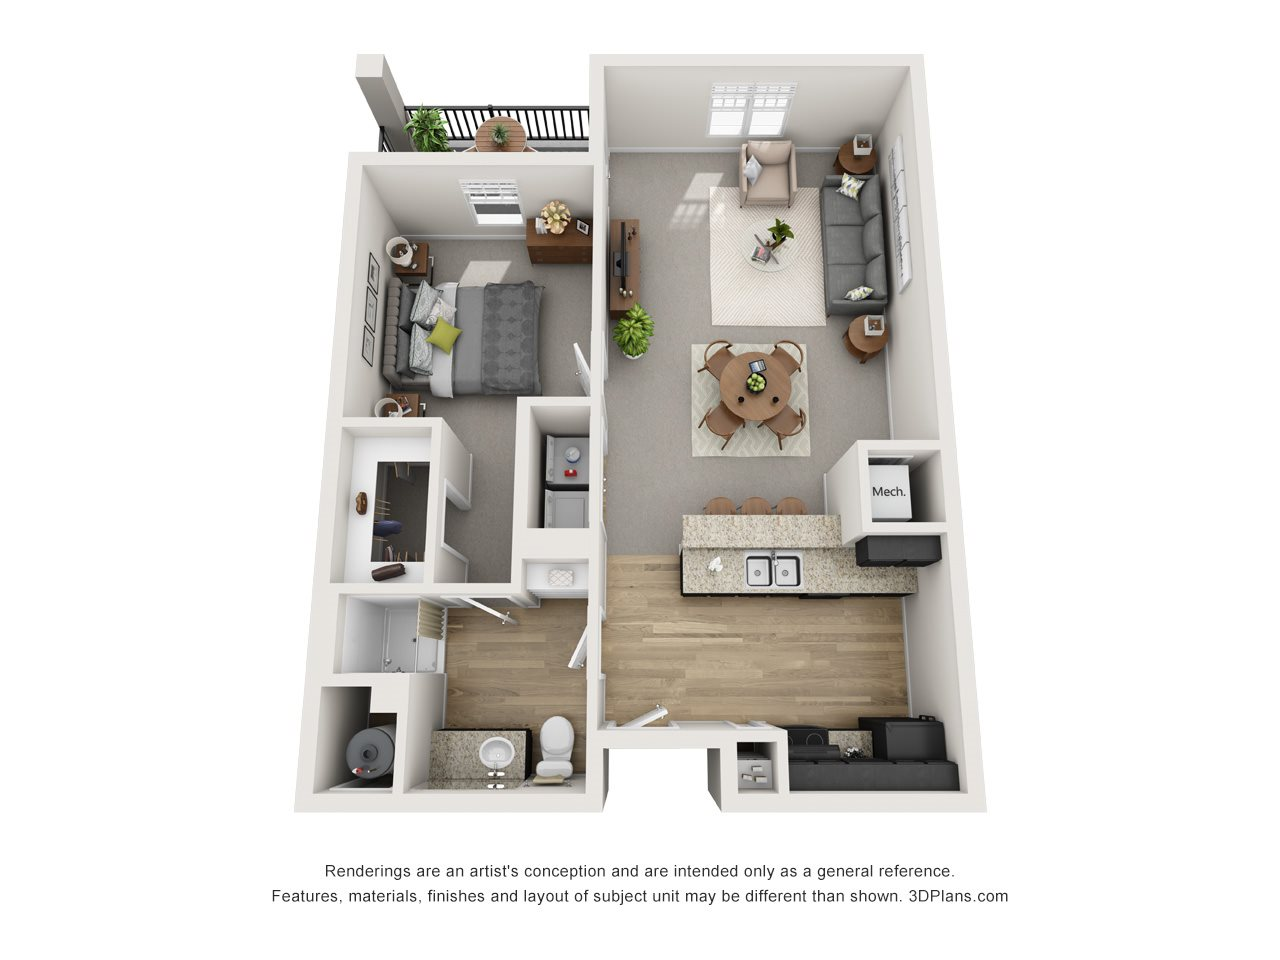 1 Bed / 1 Bath Floor Plan 1